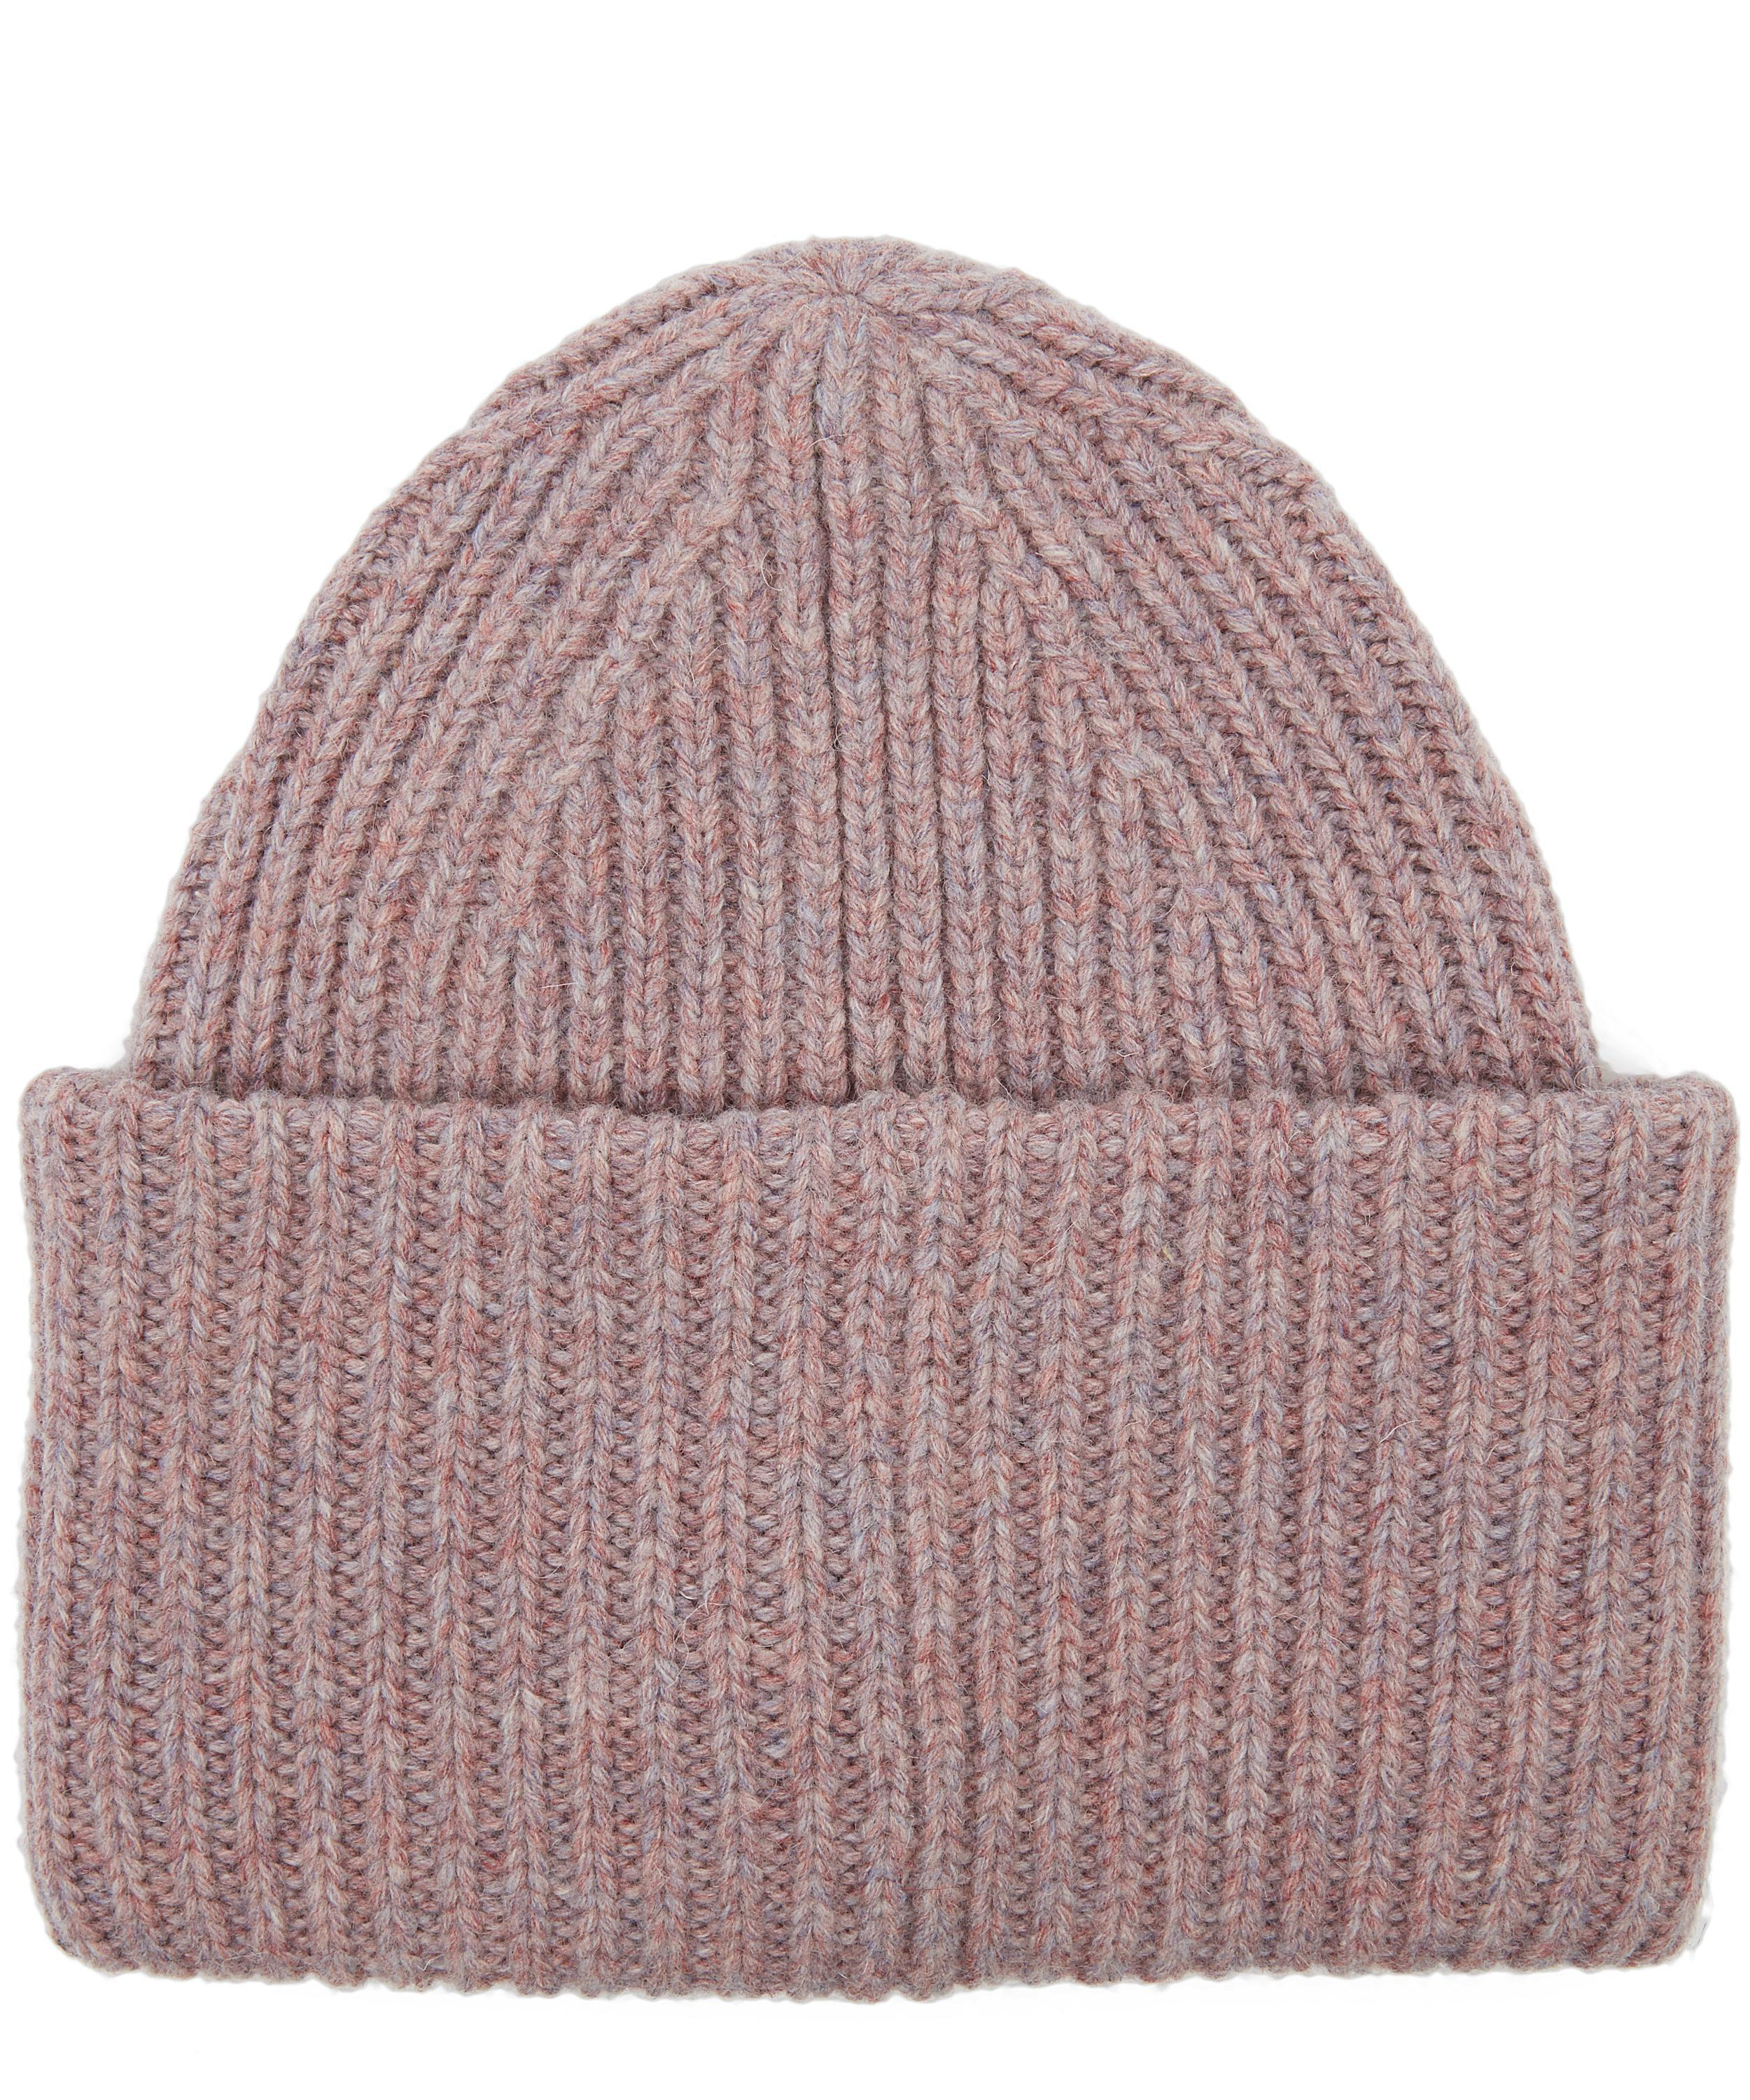 c2e9410b62d Acne Studios Pansy Wool Beanie in Pink - Lyst